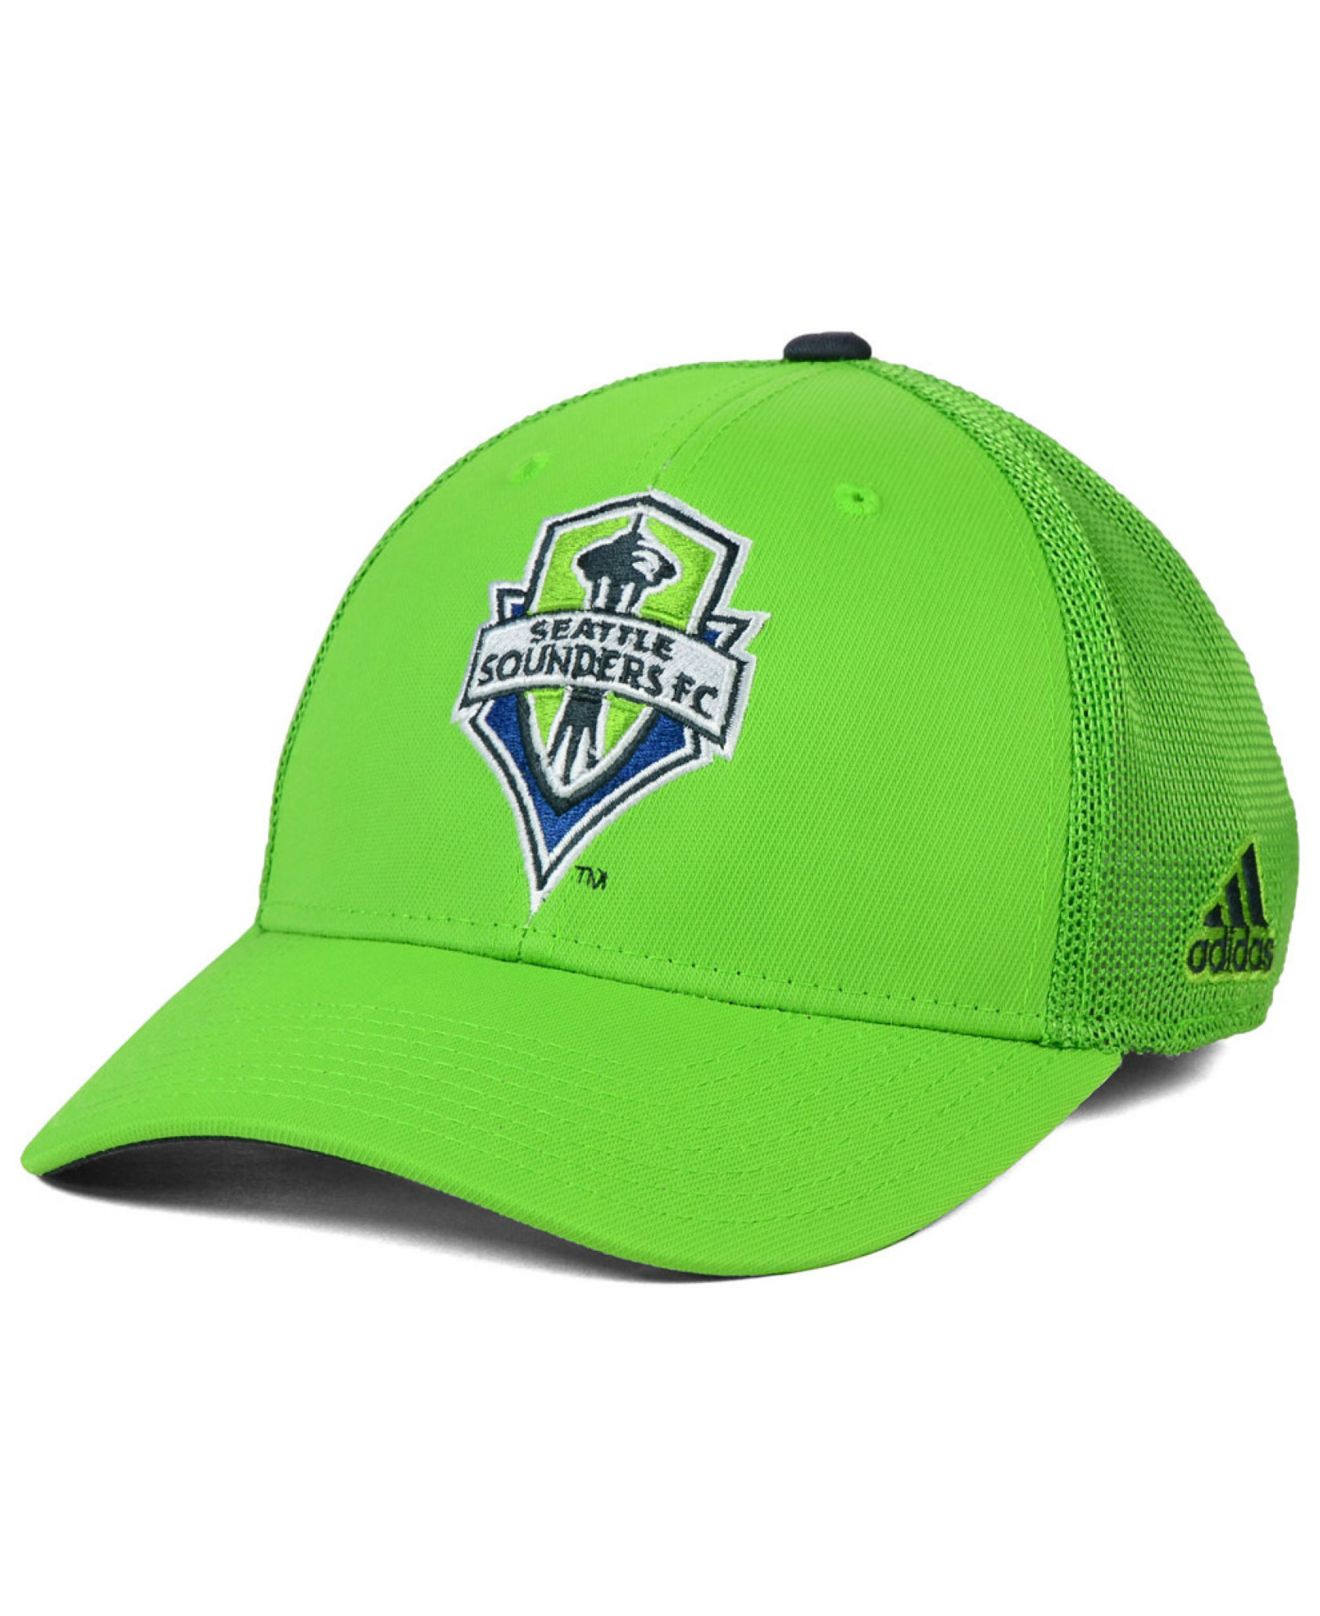 dcfda0ccbf6 Lyst - Adidas Originals Seattle Sounders Stretch-fit Cap in Green ...